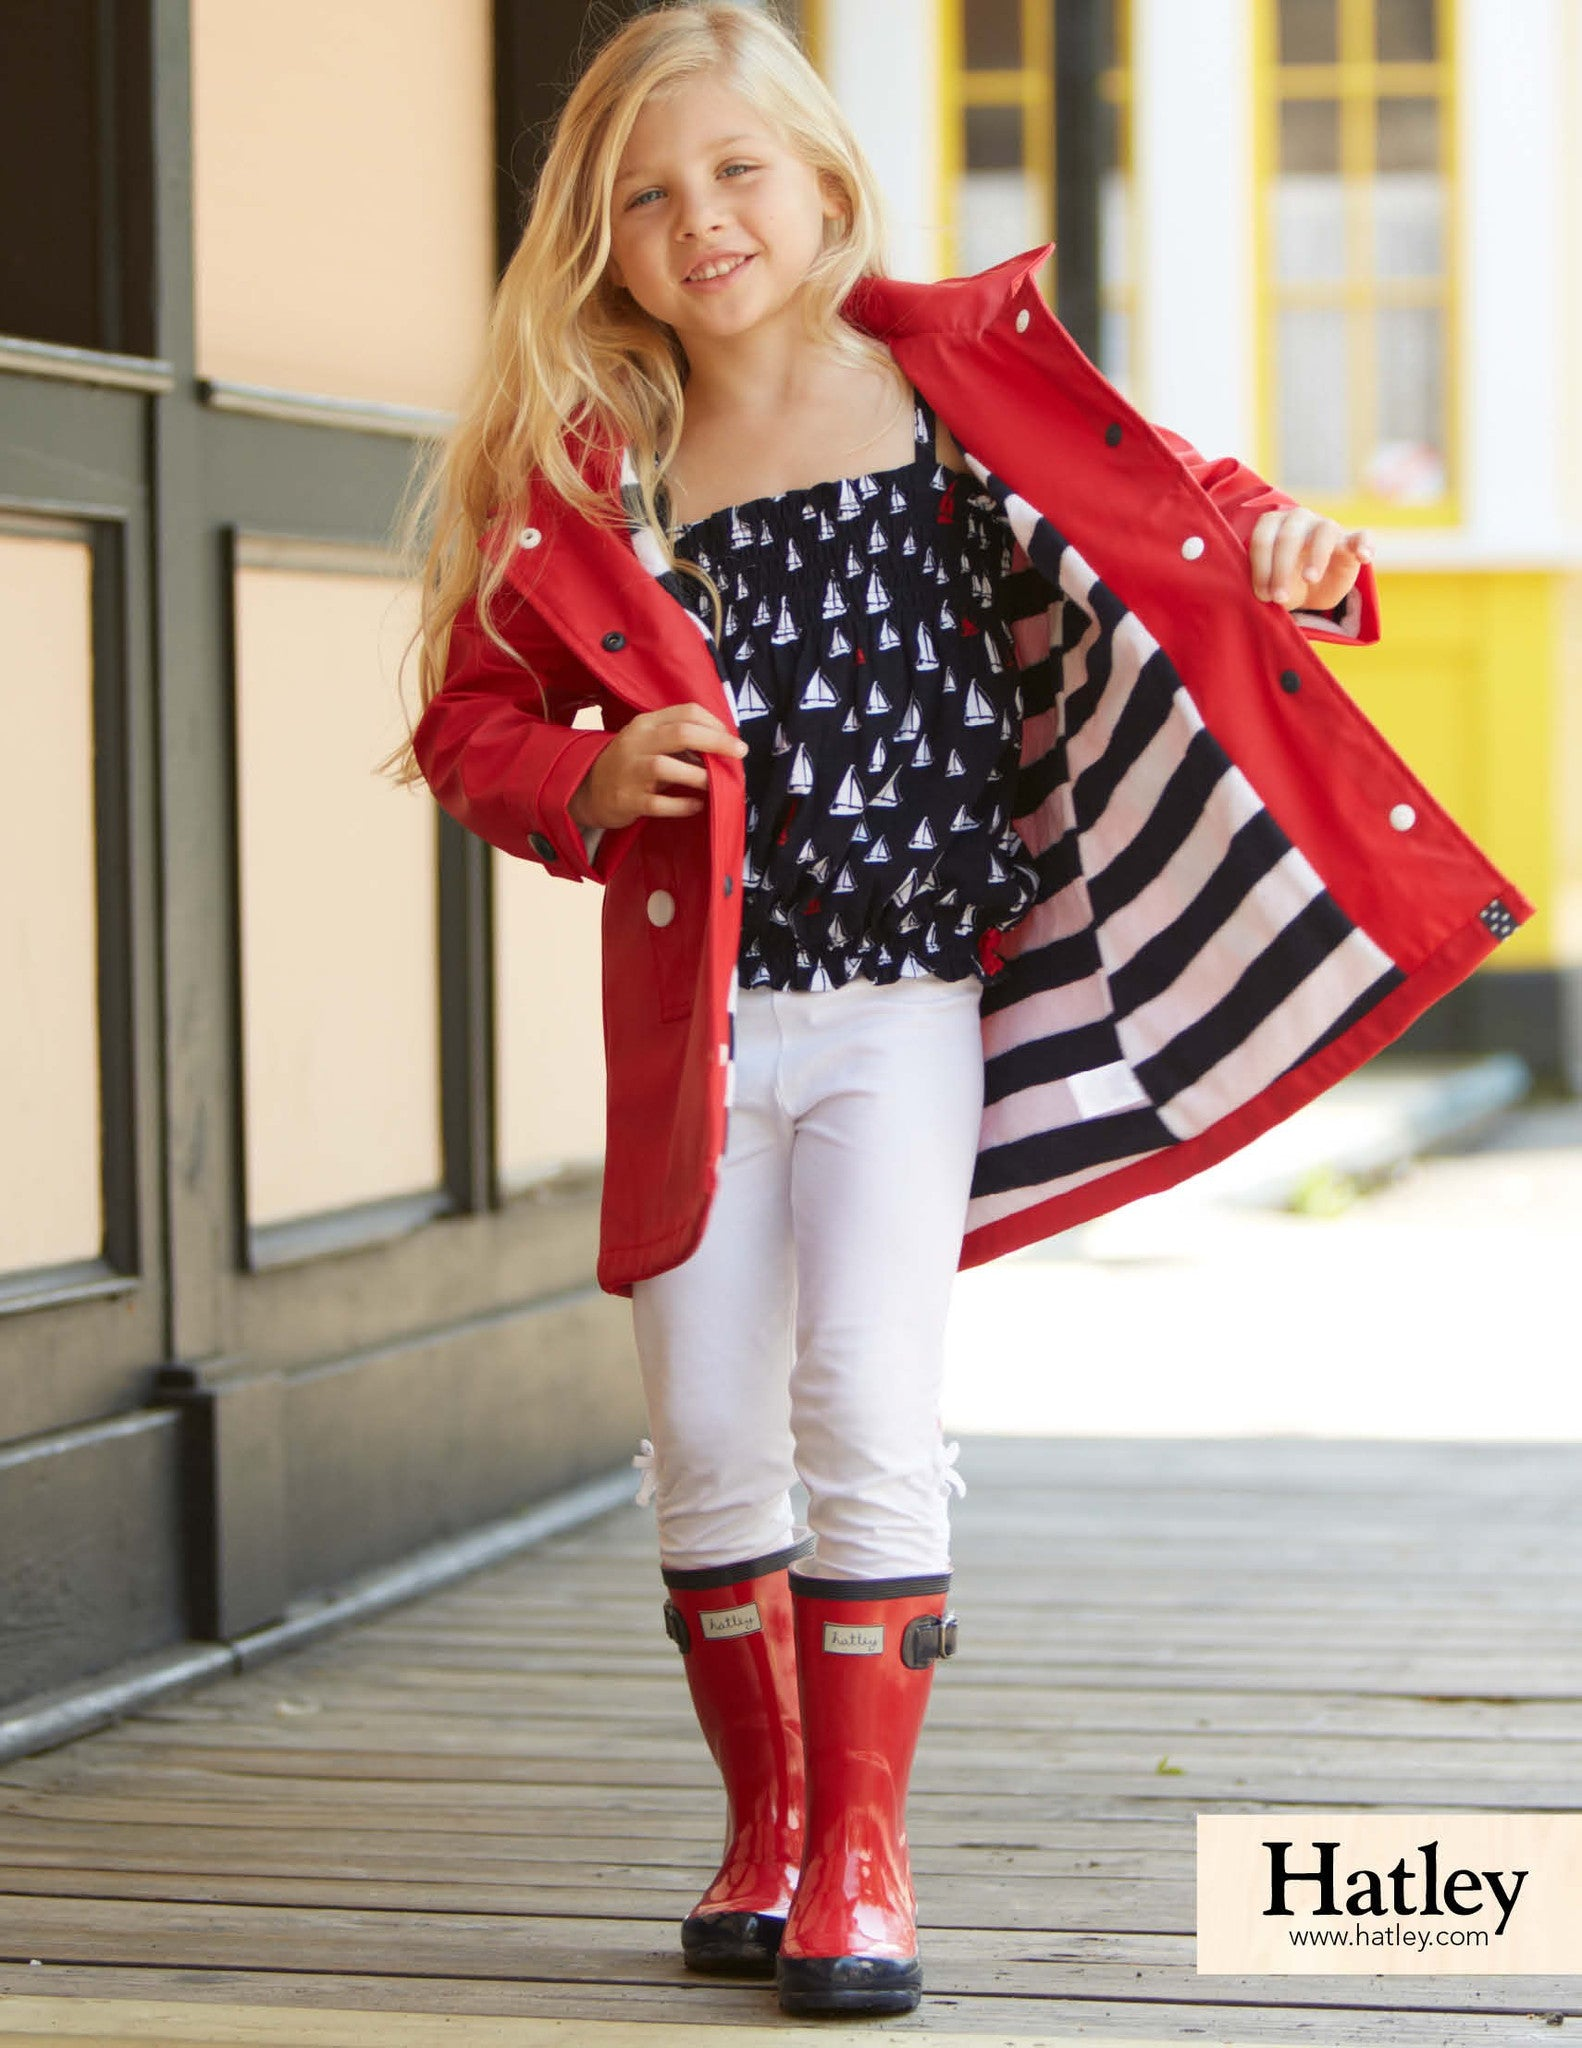 Girl in Red Hatley Raincoat